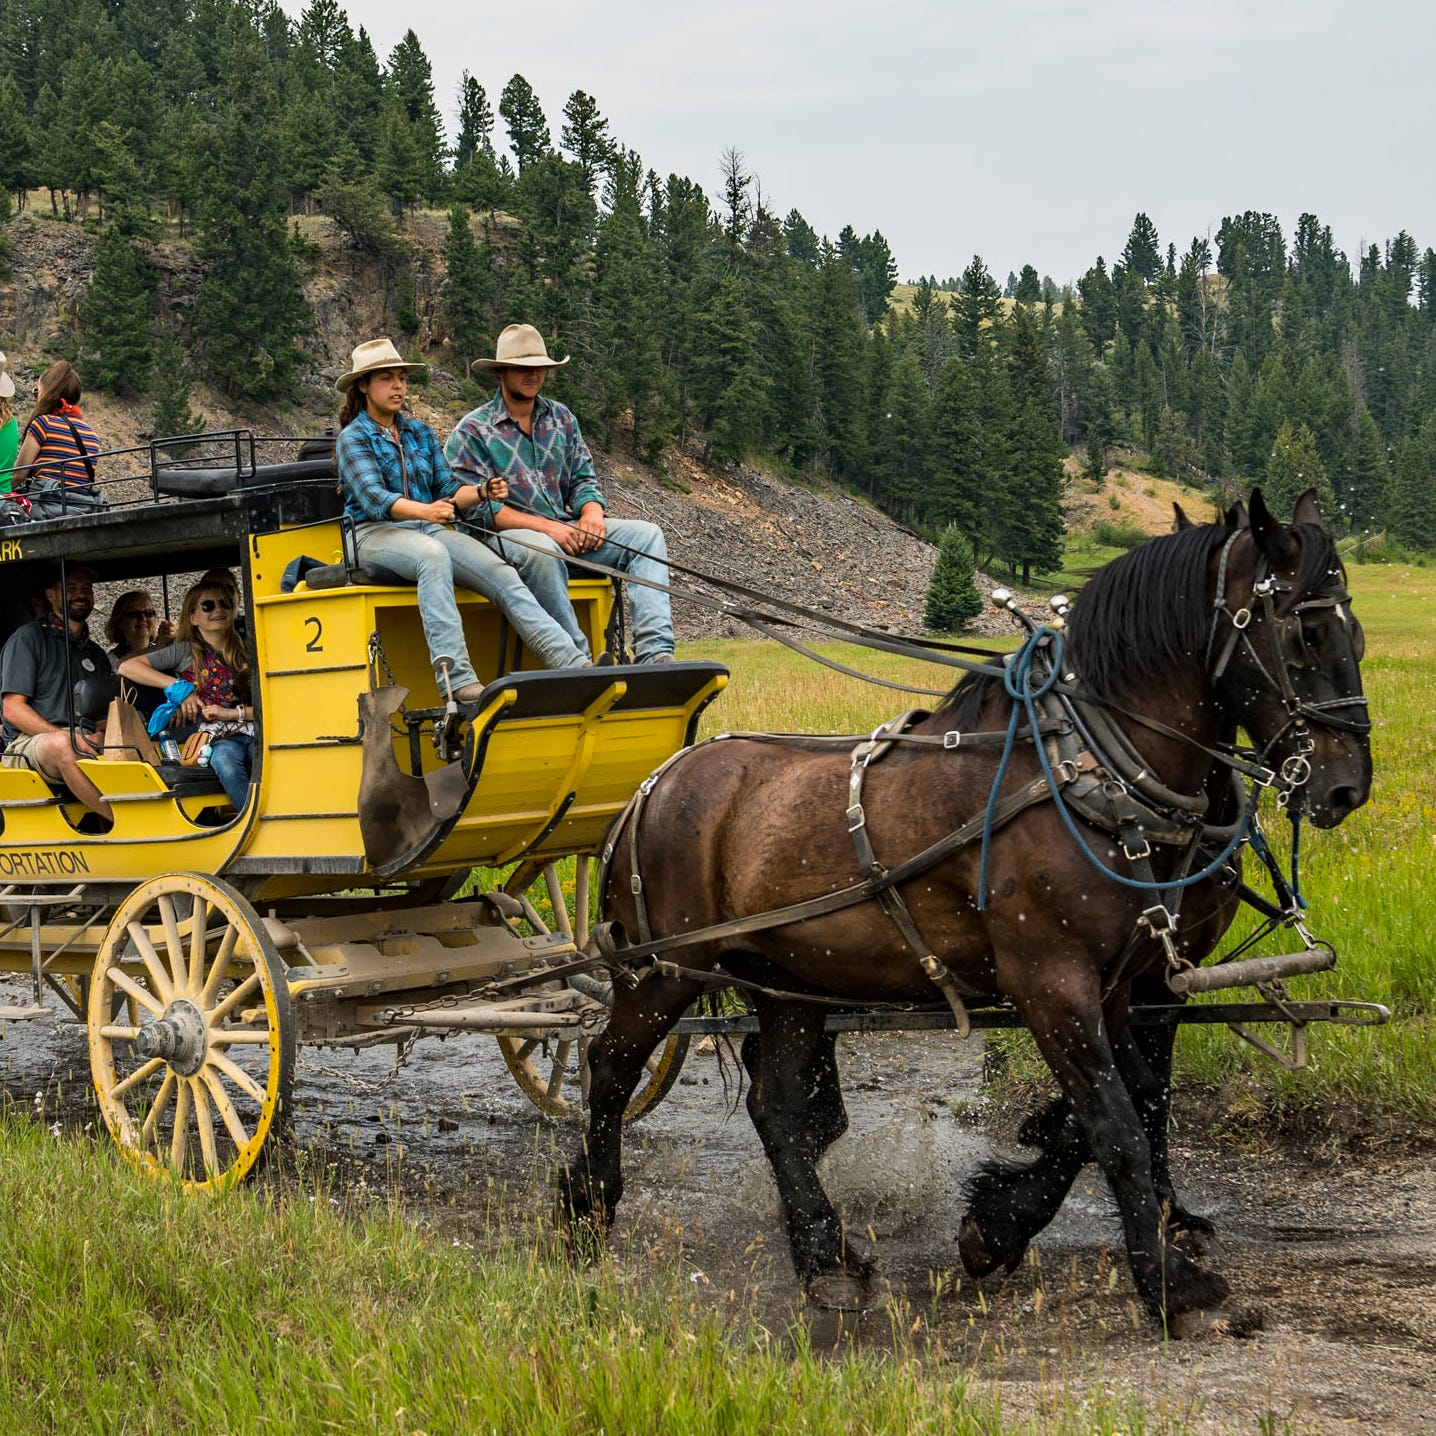 Horse-drawn, replica stagecoaches help give a sense of the way visitors first traveled through Yellowstone in the late 1800s and early 1900s.